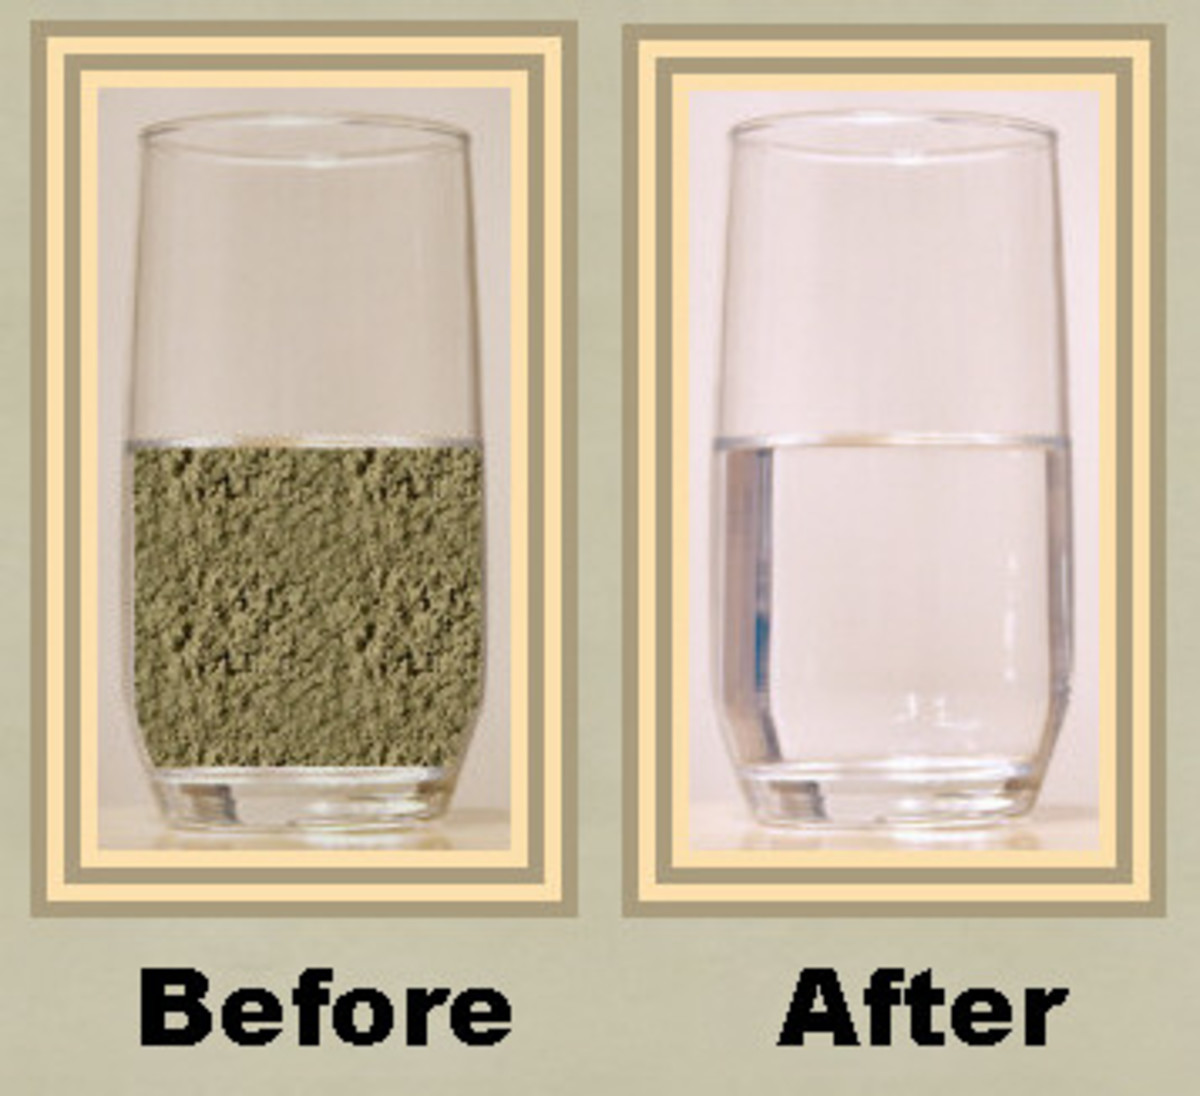 Moringa seeds are incredible water purifiers!